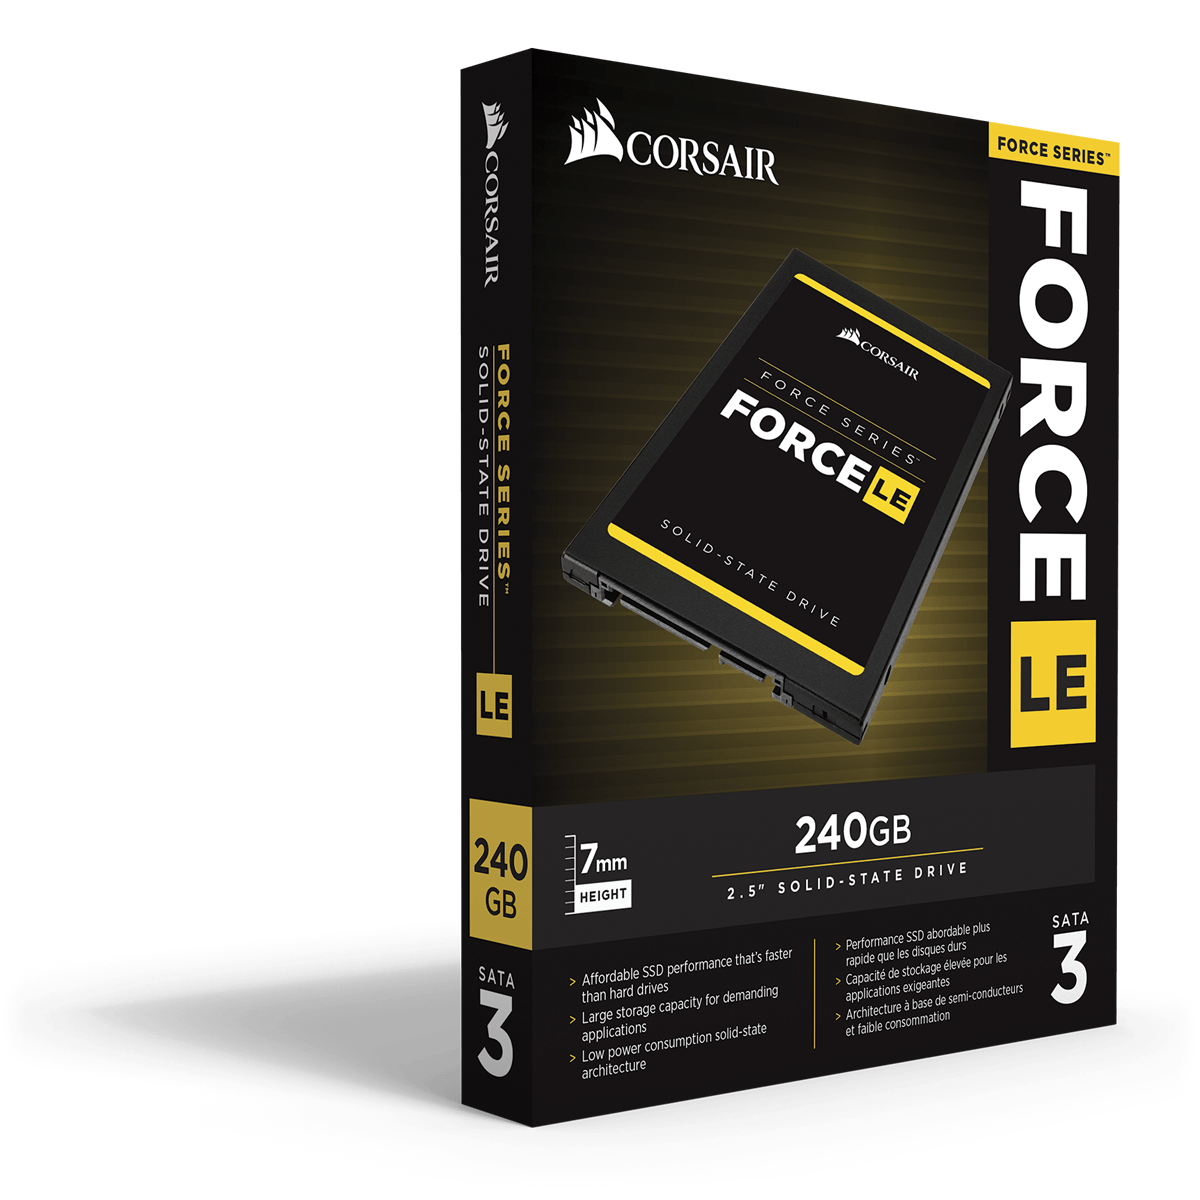 Corsair Force Series LE 240GB SATA 3 6Gb / S SSD